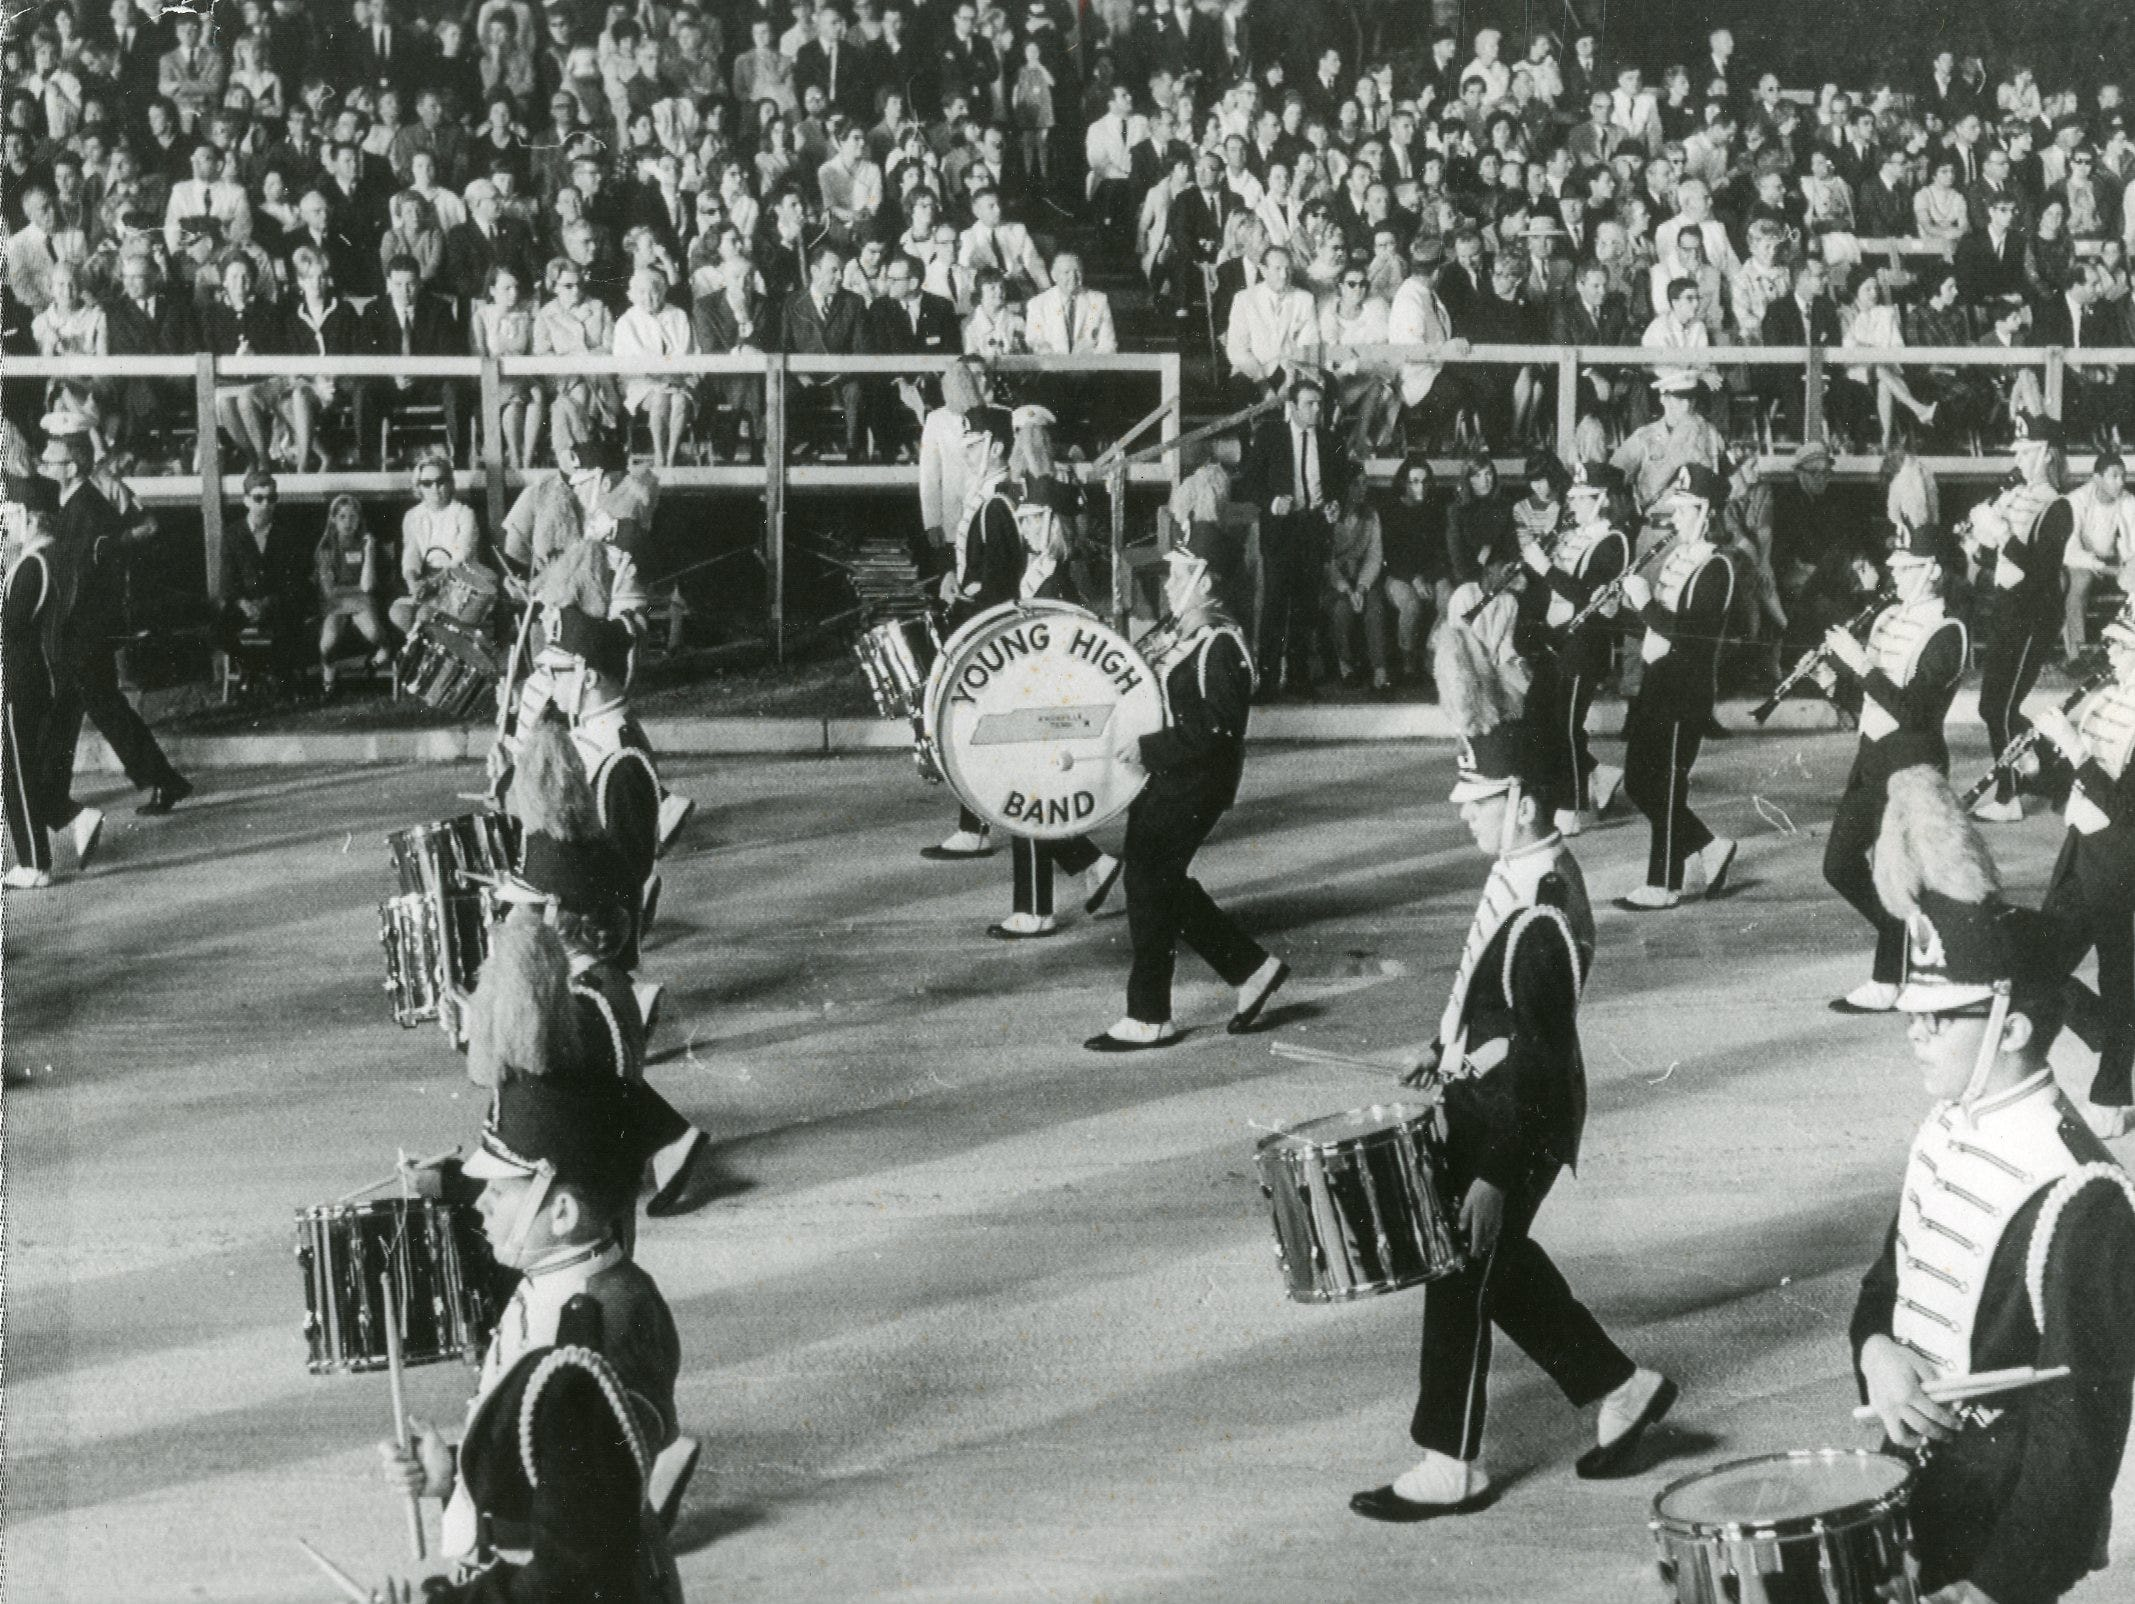 Young High marching band in the Orange Bowl parade, December, 1967.